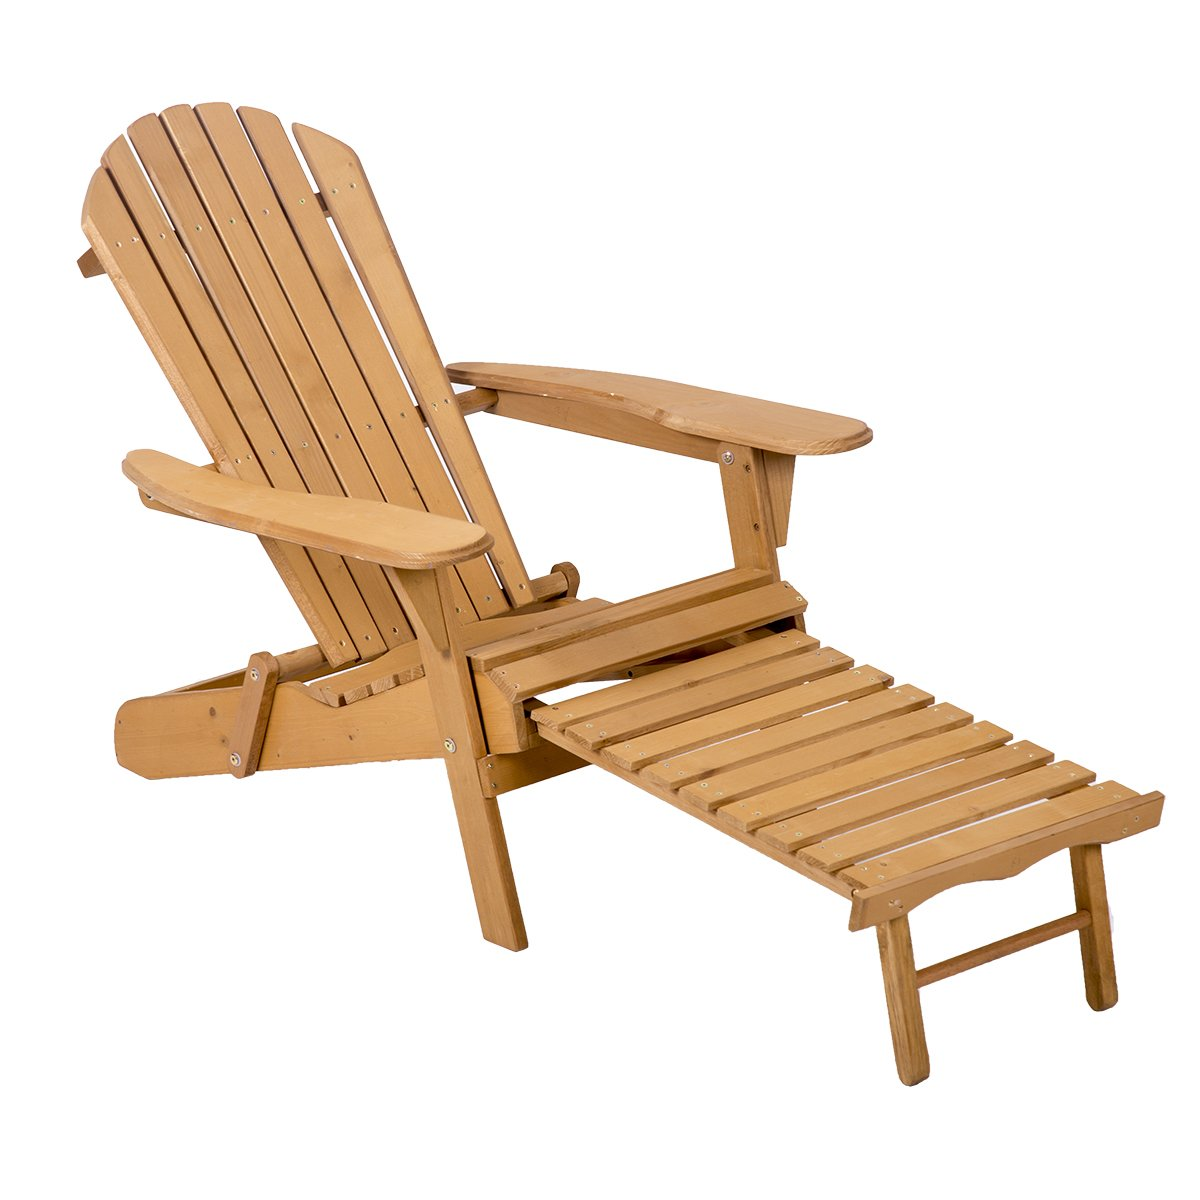 FDW Outdoor Wood Adirondack Chair Foldable w/Pull Out Ottoman Patio Furniture by FDW (Image #1)